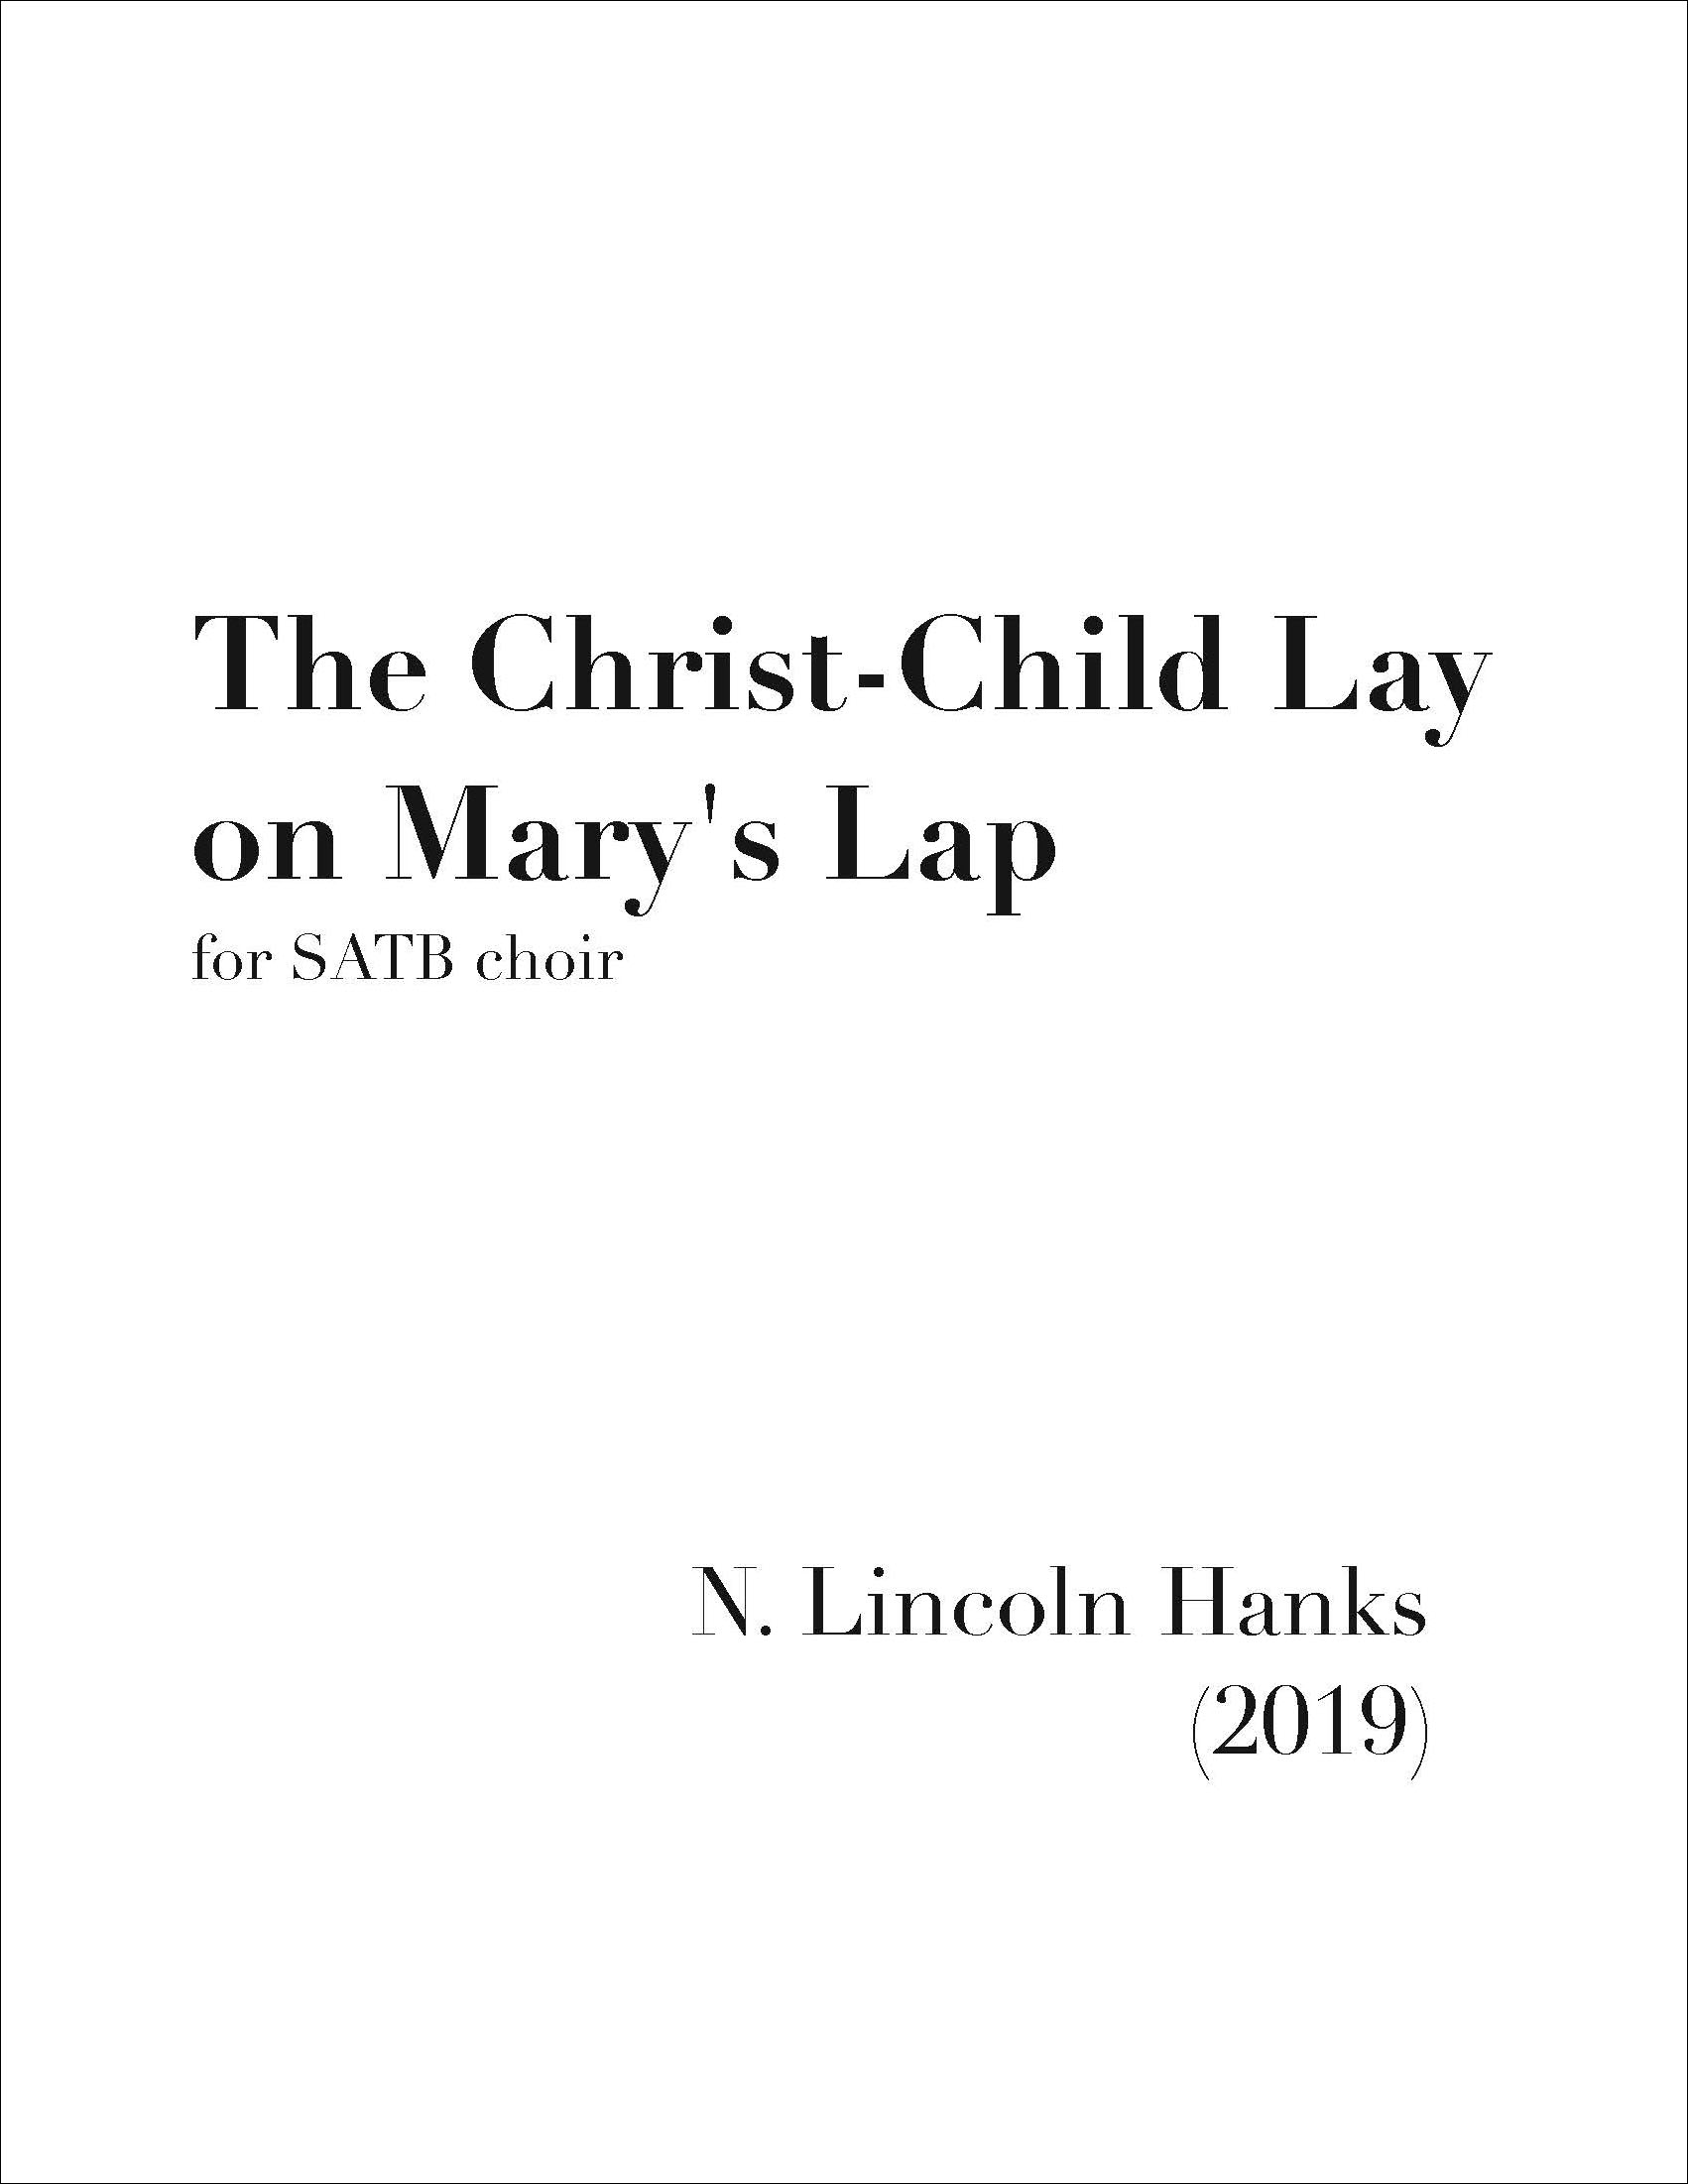 The Christ-Child Lay on Mary's Lap